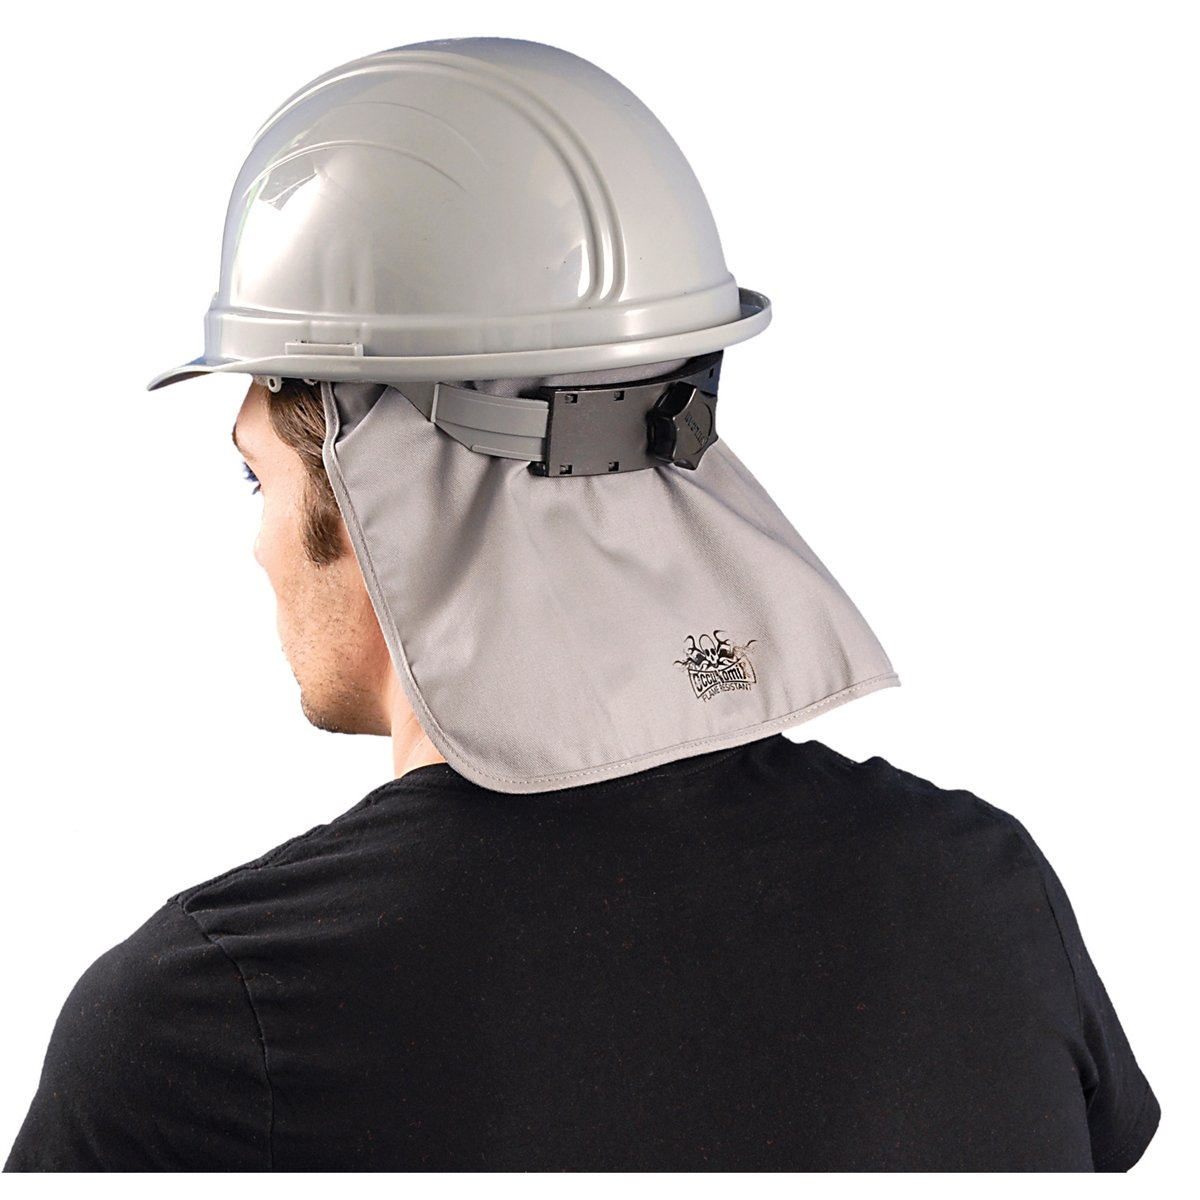 24PCK-Miracool FR Hard Hat Pad w/Shade HRC 1 - Re-Usable 100's of times - GRAY